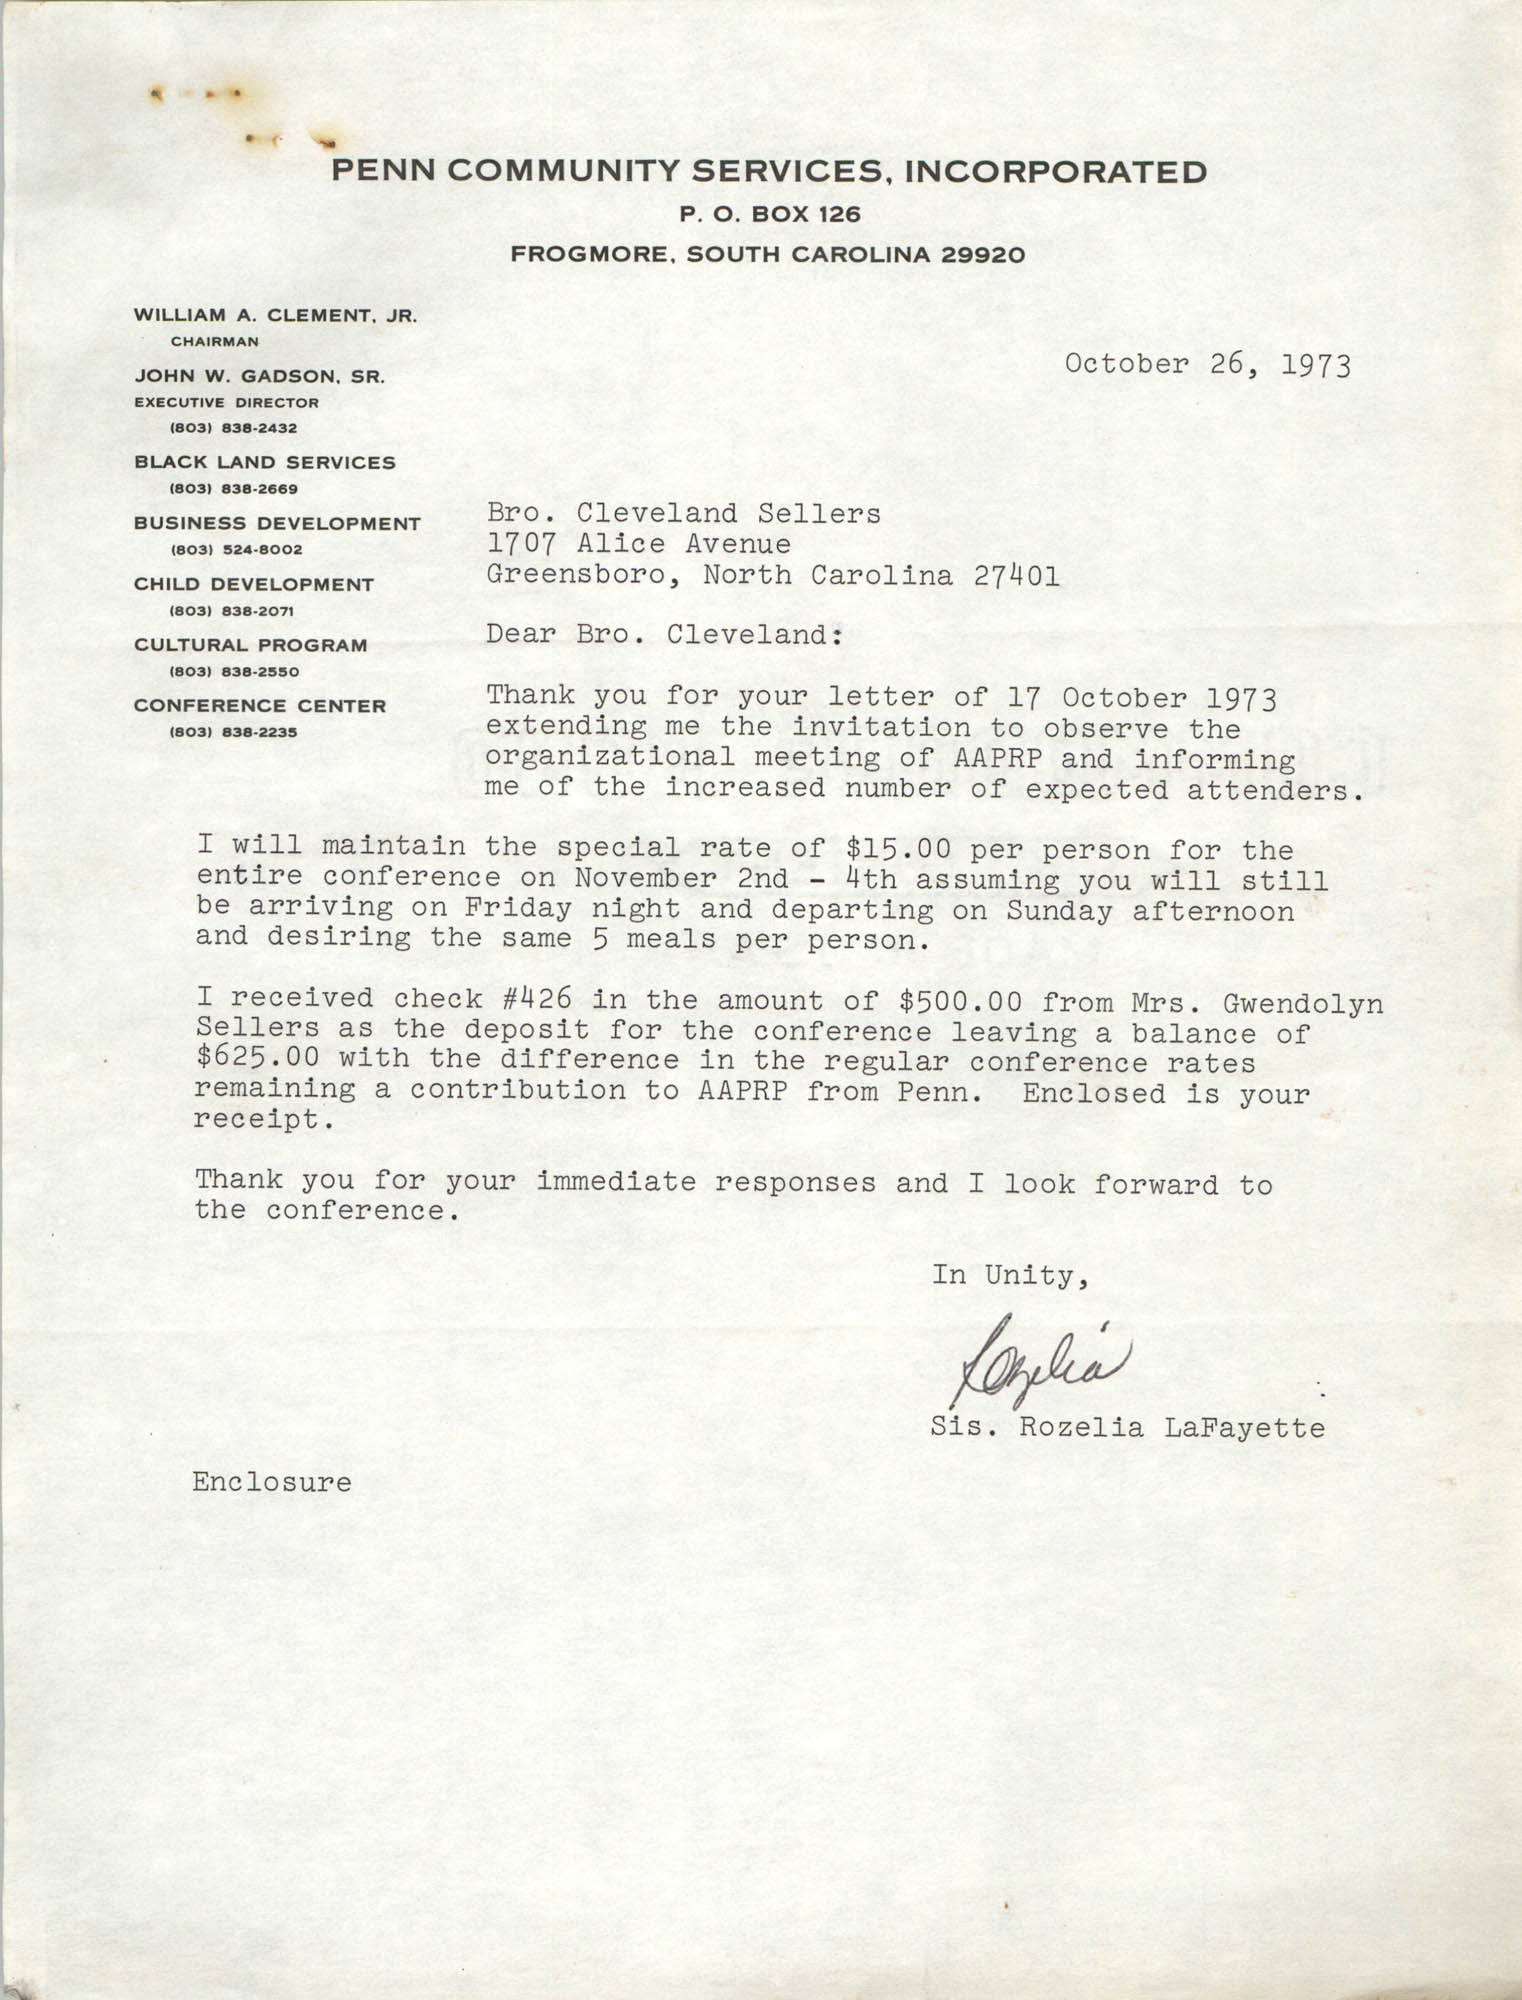 Letter from Rozelia LaFayette to Cleveland Sellers, October 26, 1973